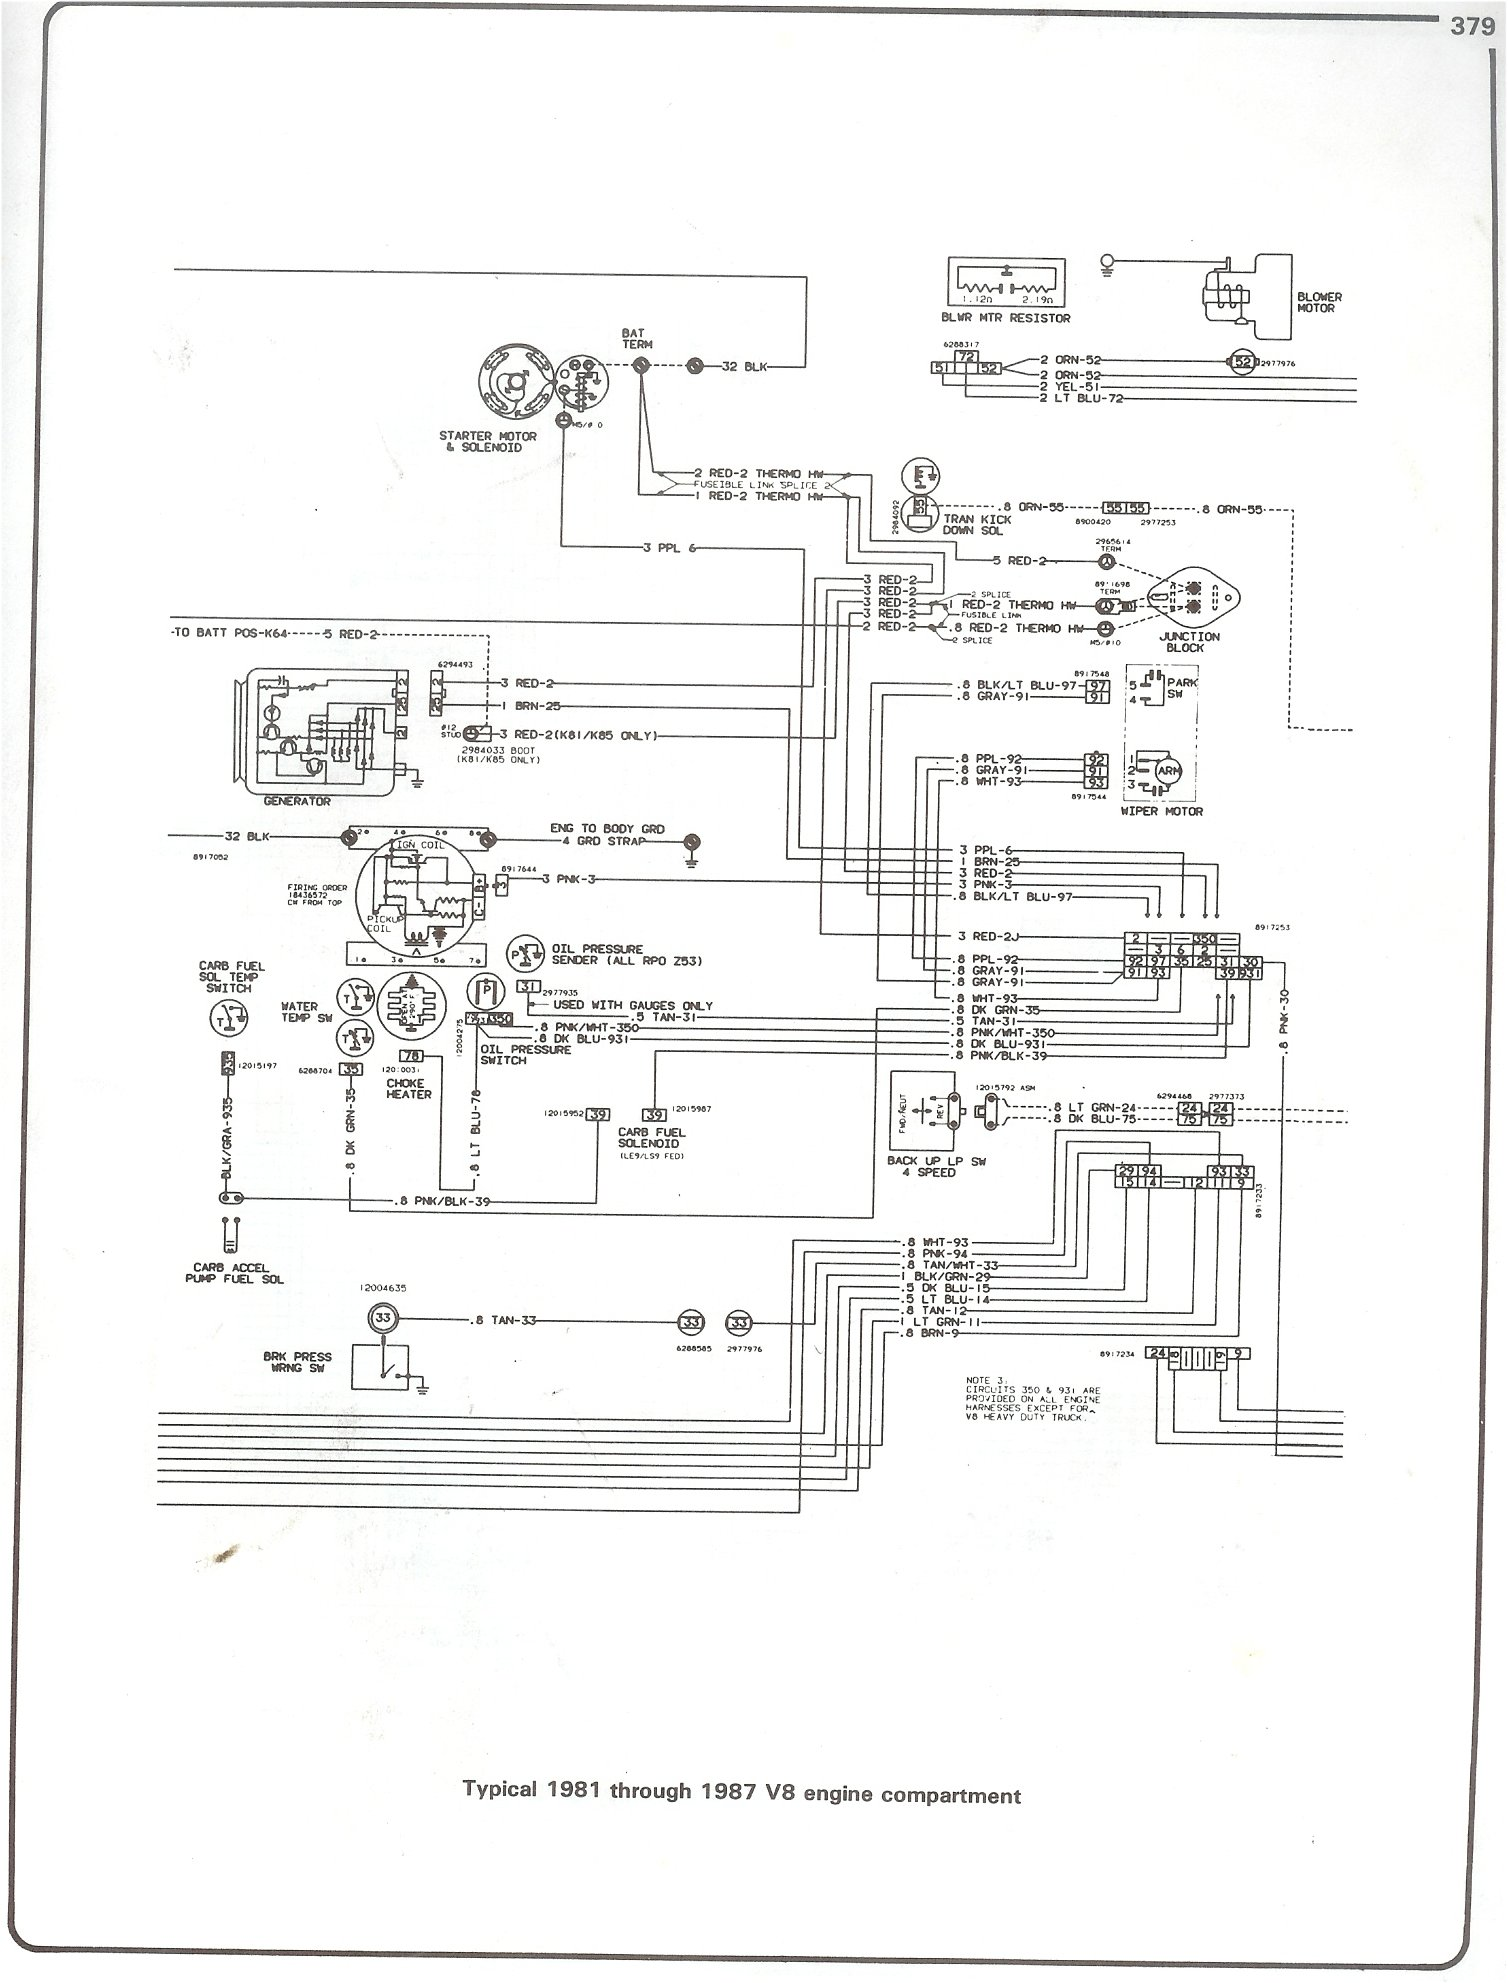 1986 chevy truck headlight wiring diagrams online wiring diagram 1987 K5 Blazer Wiring Diagram 1986 chevy truck headlight wiring diagrams schematic wiring diagram 1986 chevy truck headlight wiring diagrams